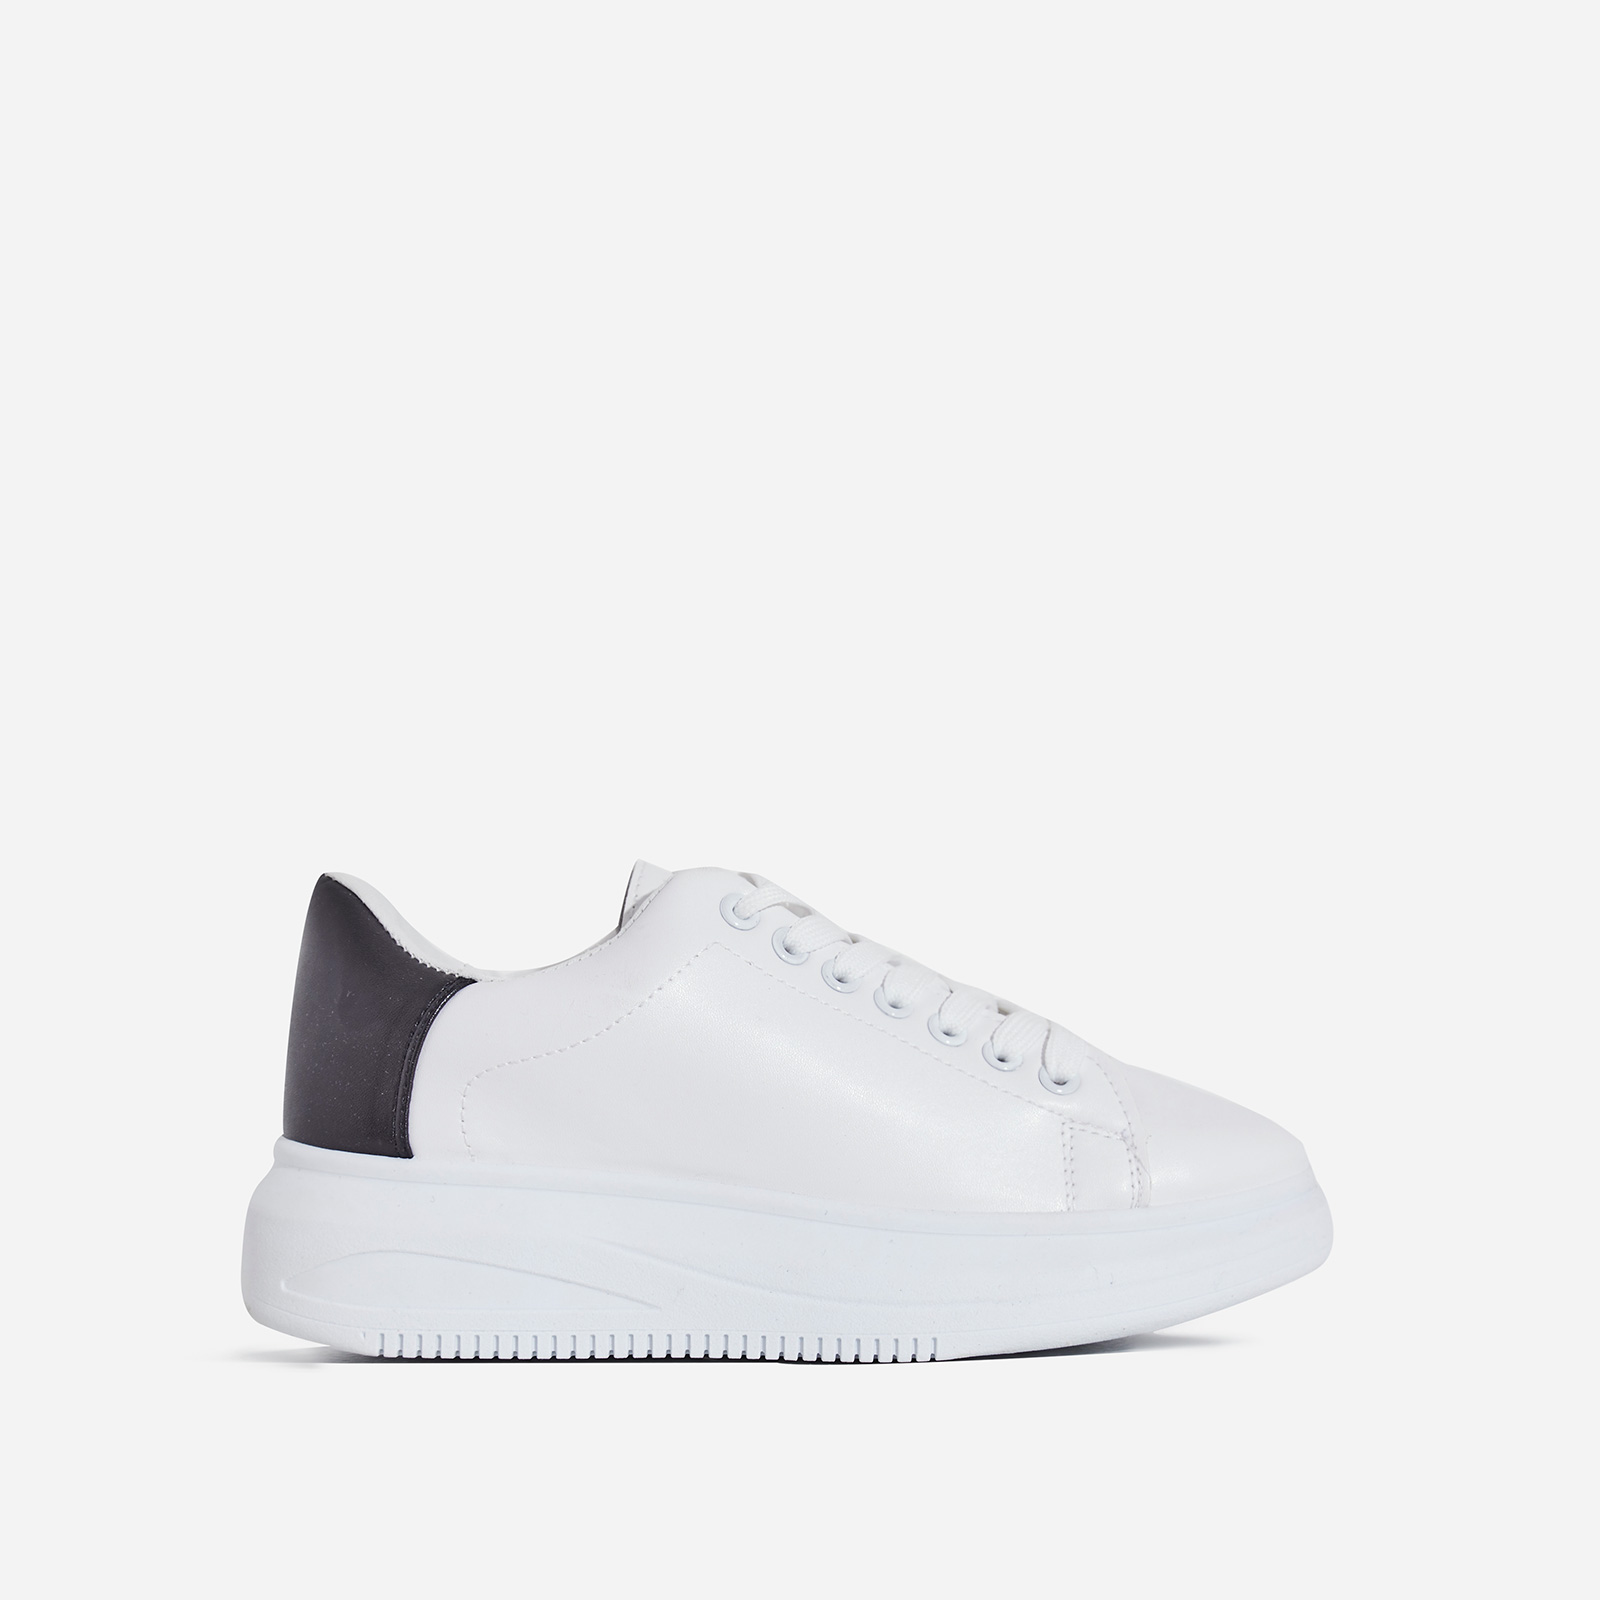 Neo Chunky Sole Black Heel Tab Trainer In White Faux Leather